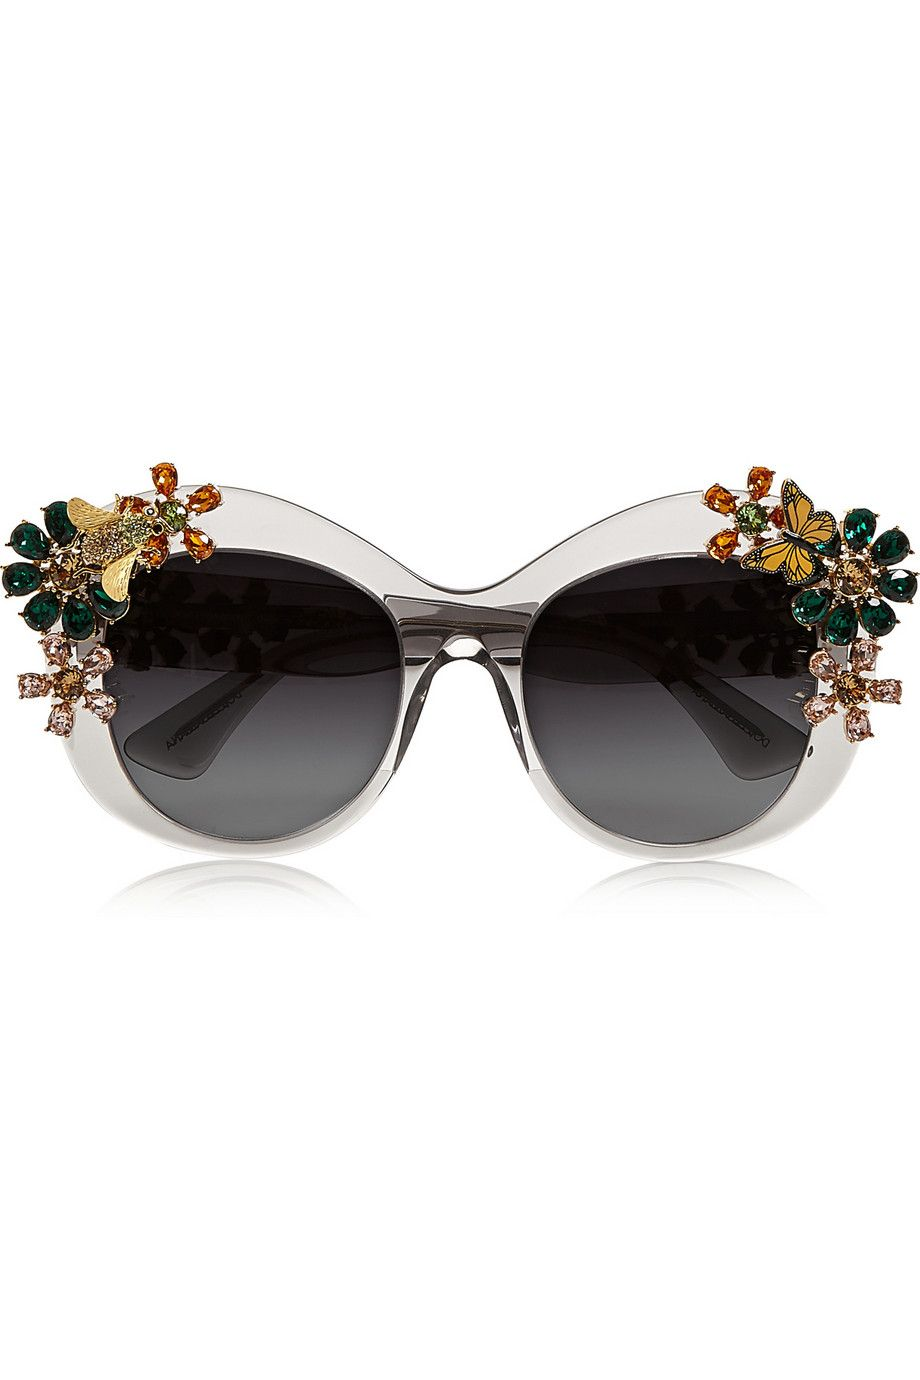 Dolce & Gabbana Eyewear Swarovski embellished sunglasses Clearance Very Cheap Clearance Wiki Discount Enjoy Get Authentic Buy Cheap Limited Edition 0e6YucaOo